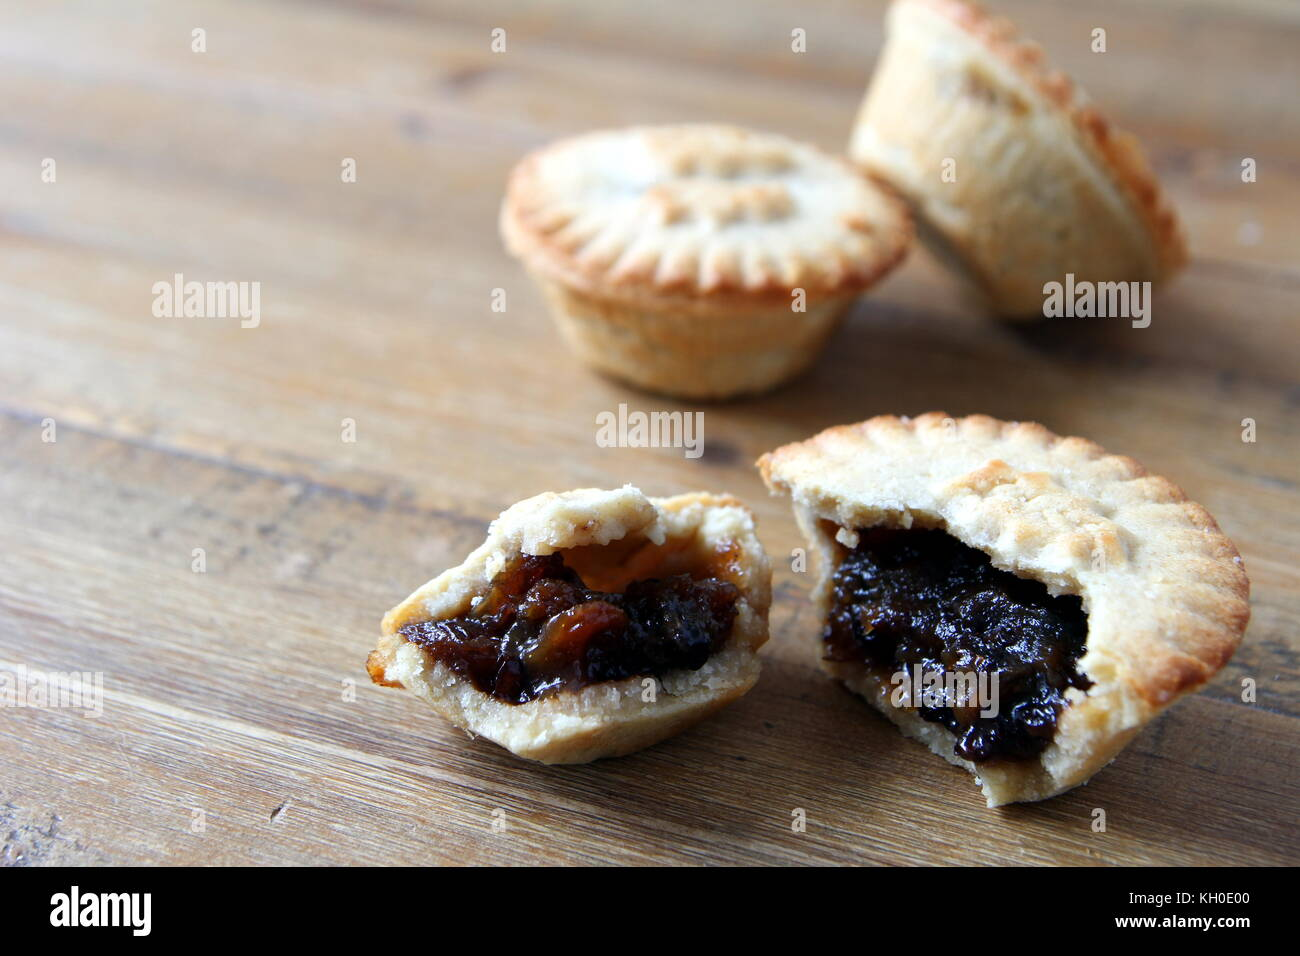 Selection of several mince pies, some broken open or partly eaten. A traditional festive Christmas dessert or pudding. - Stock Image